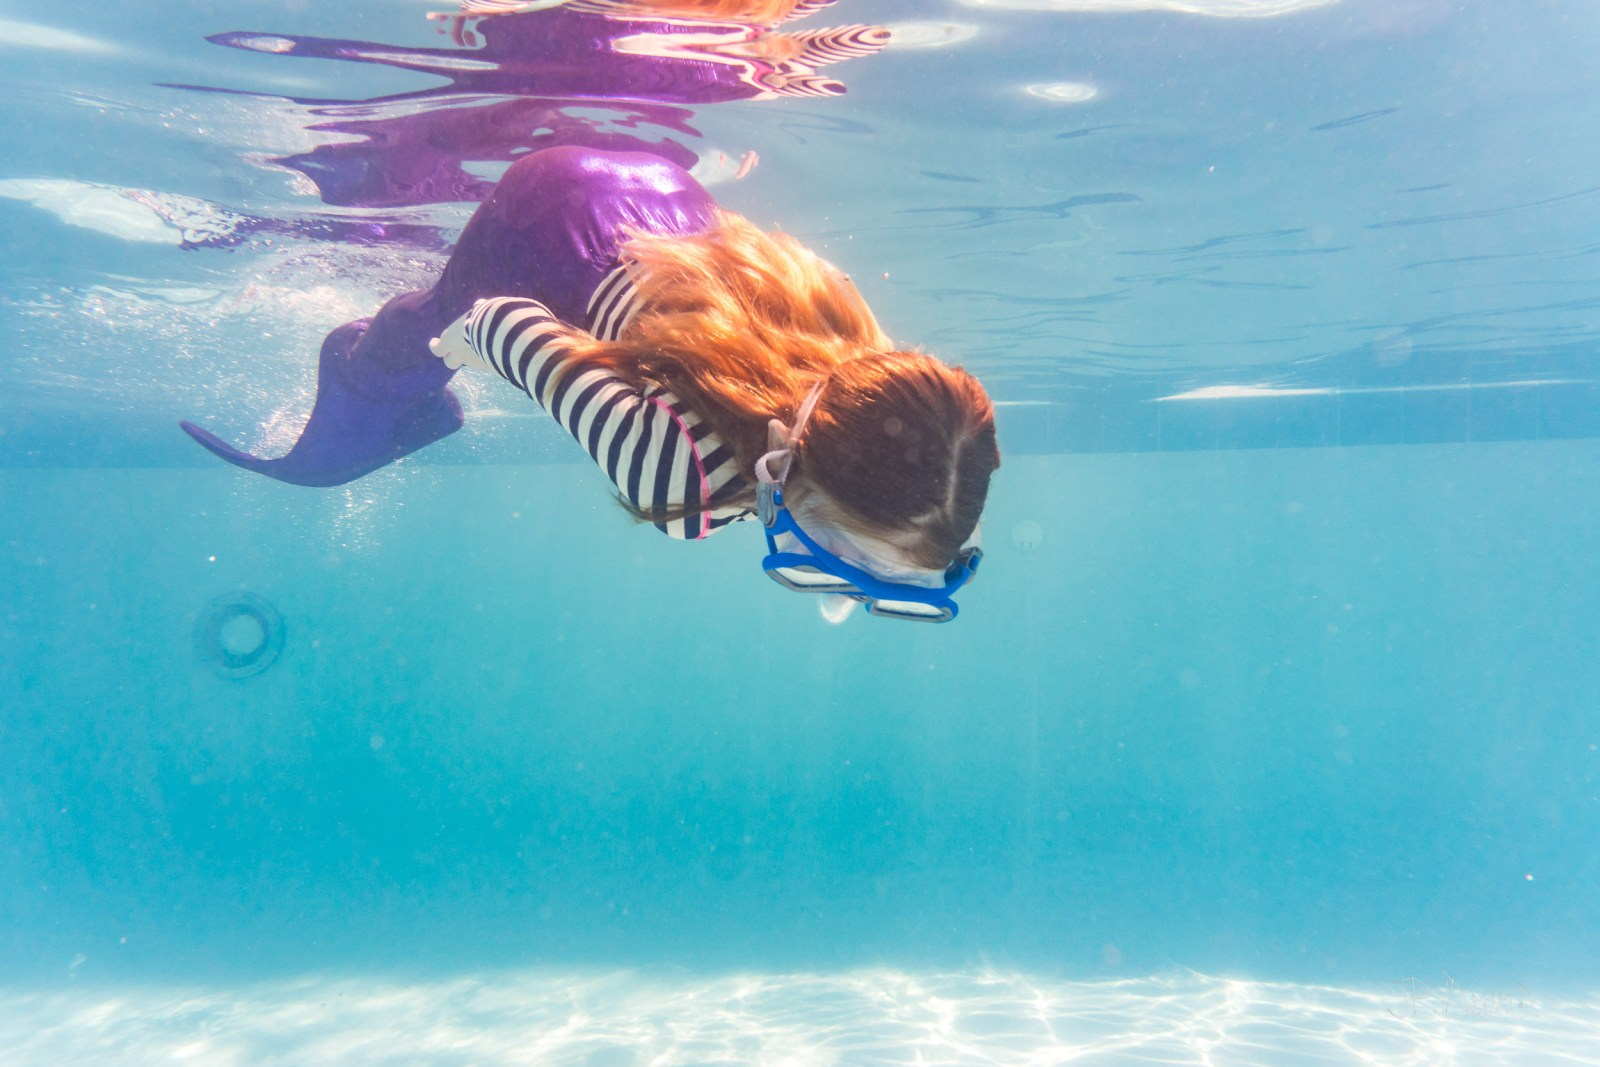 Underwater view of girl on holiday swimming in cool blue pool with colorful mermaid tail